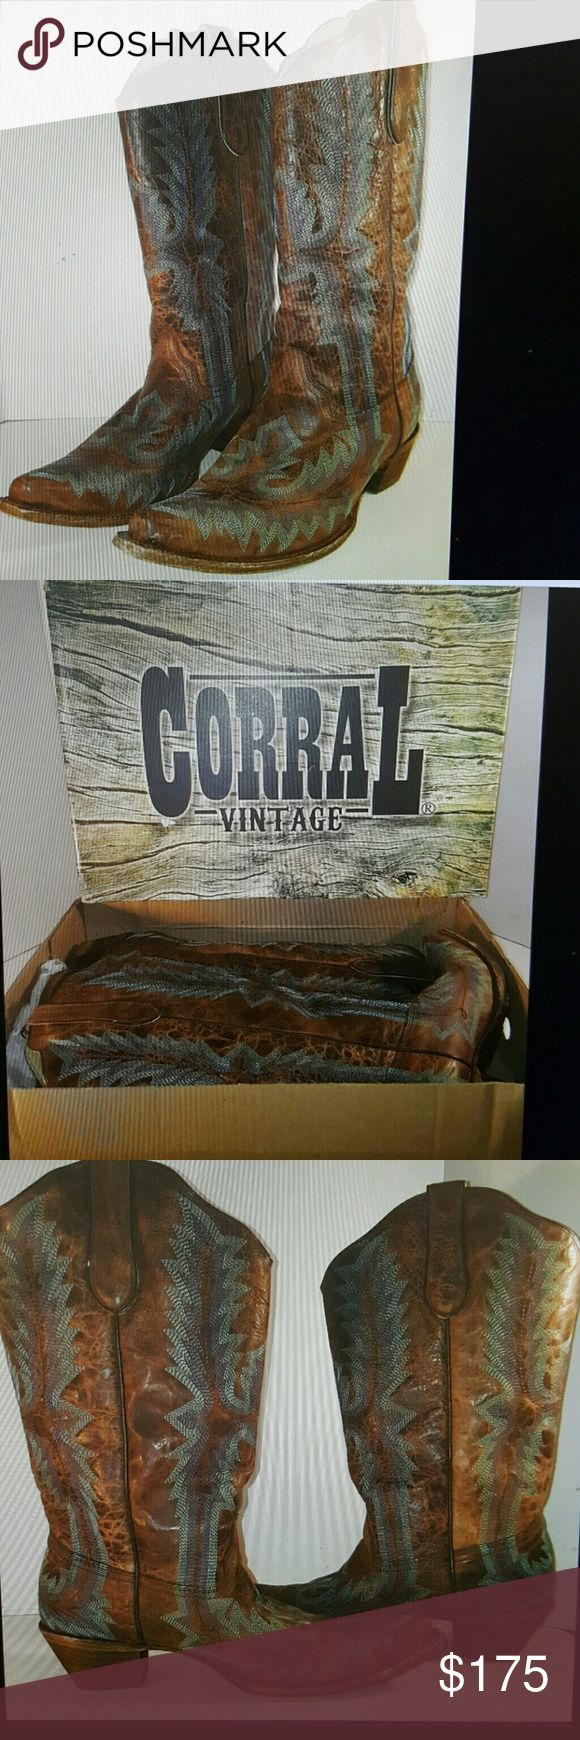 Selling this Corral womens boots size 10 western cowboy new on Poshmark! My username is: ashleypotter199. #shopmycloset #poshmark #fashion #shopping #style #forsale #corral #Shoes